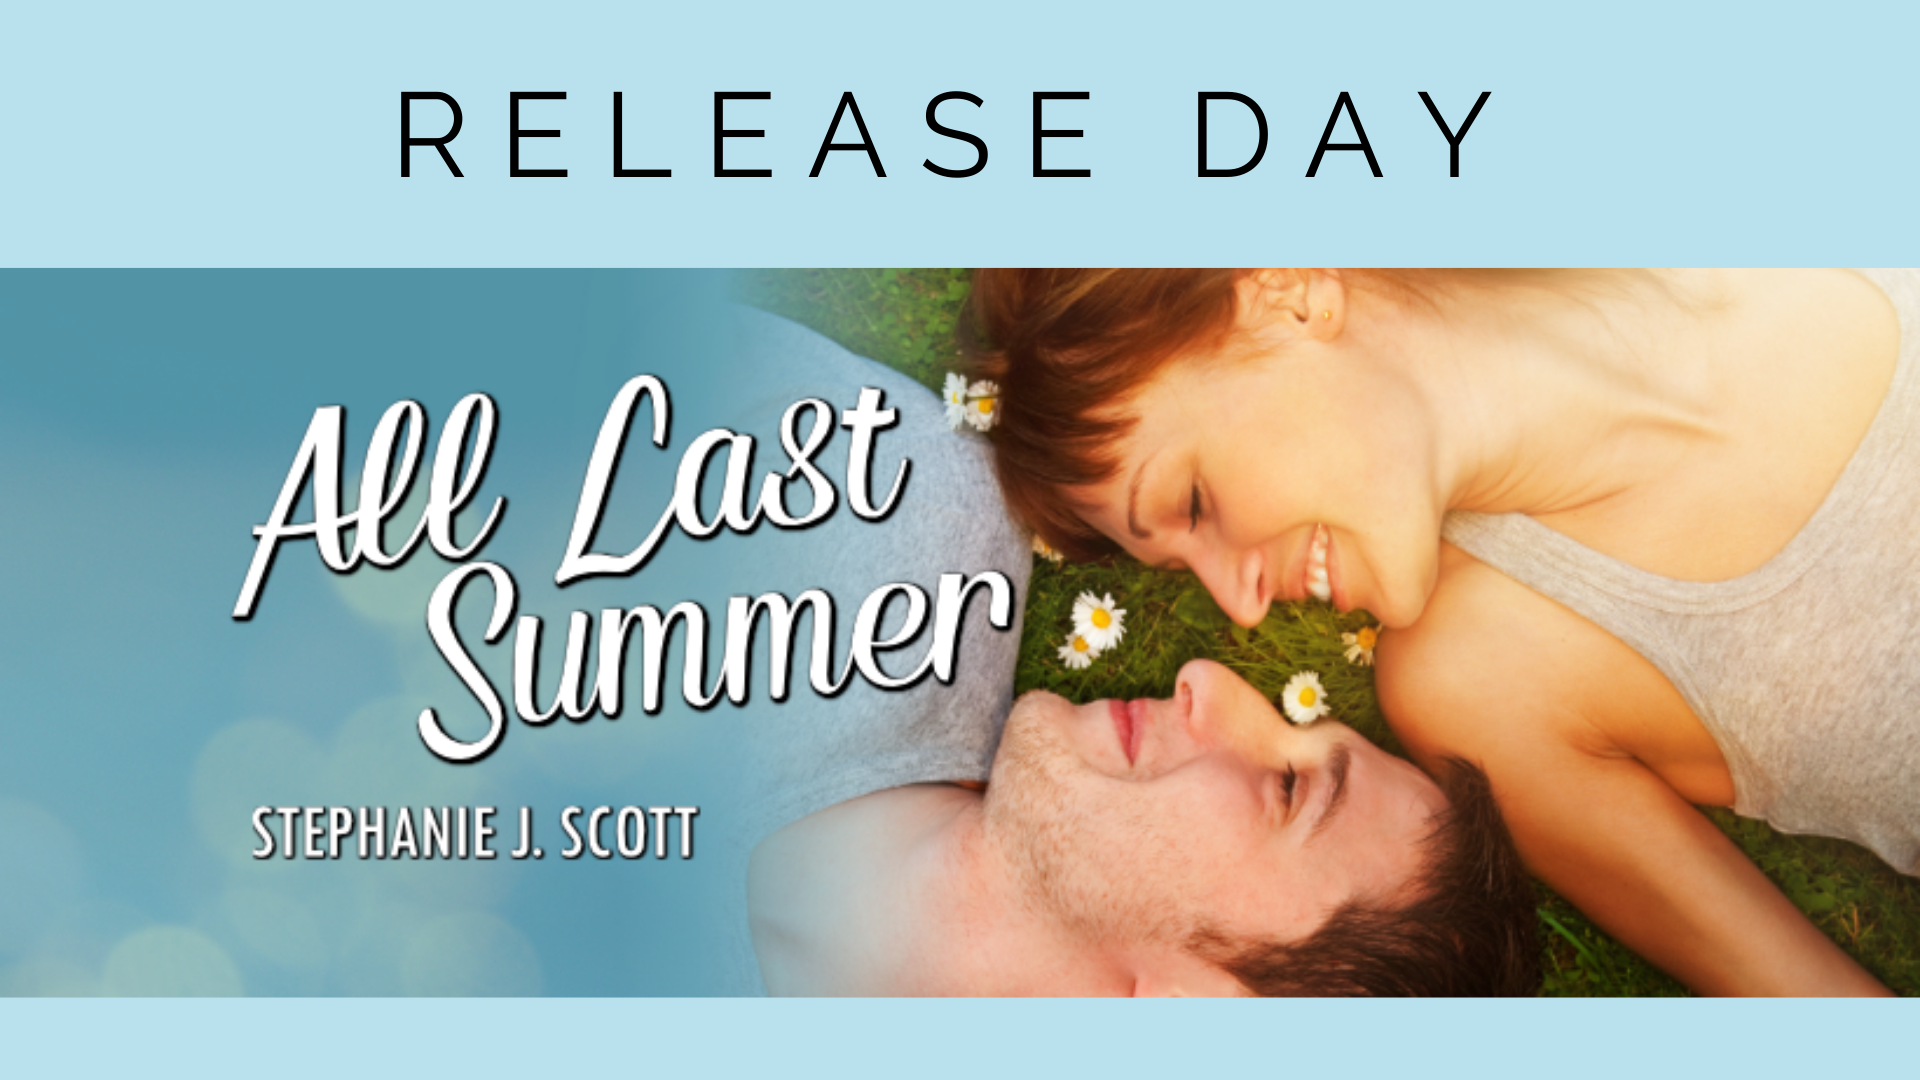 All Last Summer Release Day